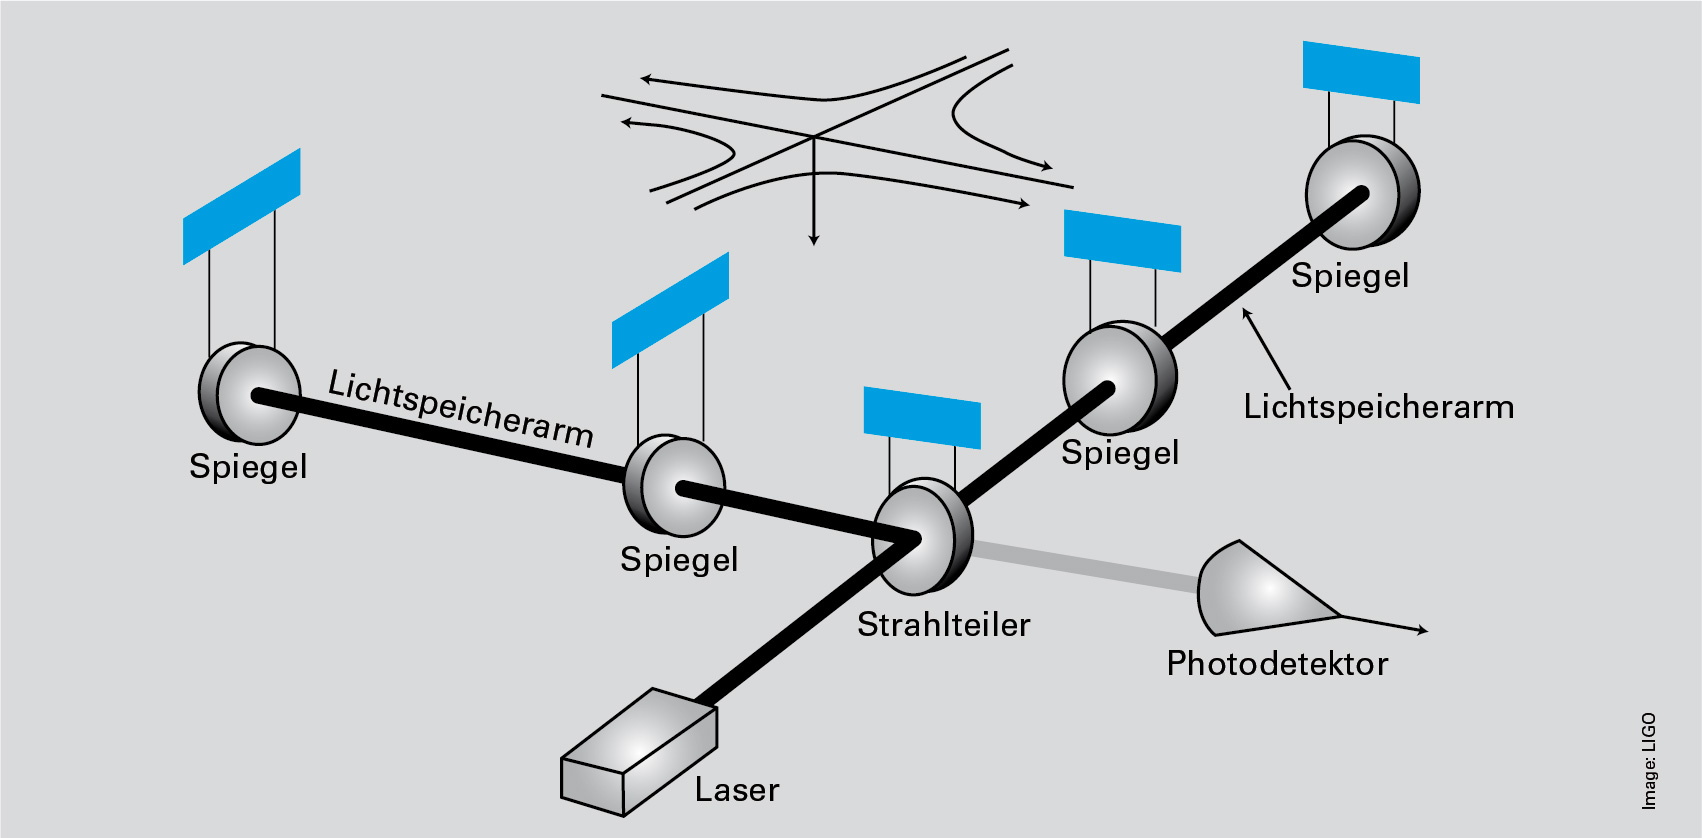 Scheme of the LIGO interferometer for the detection of gravitational waves